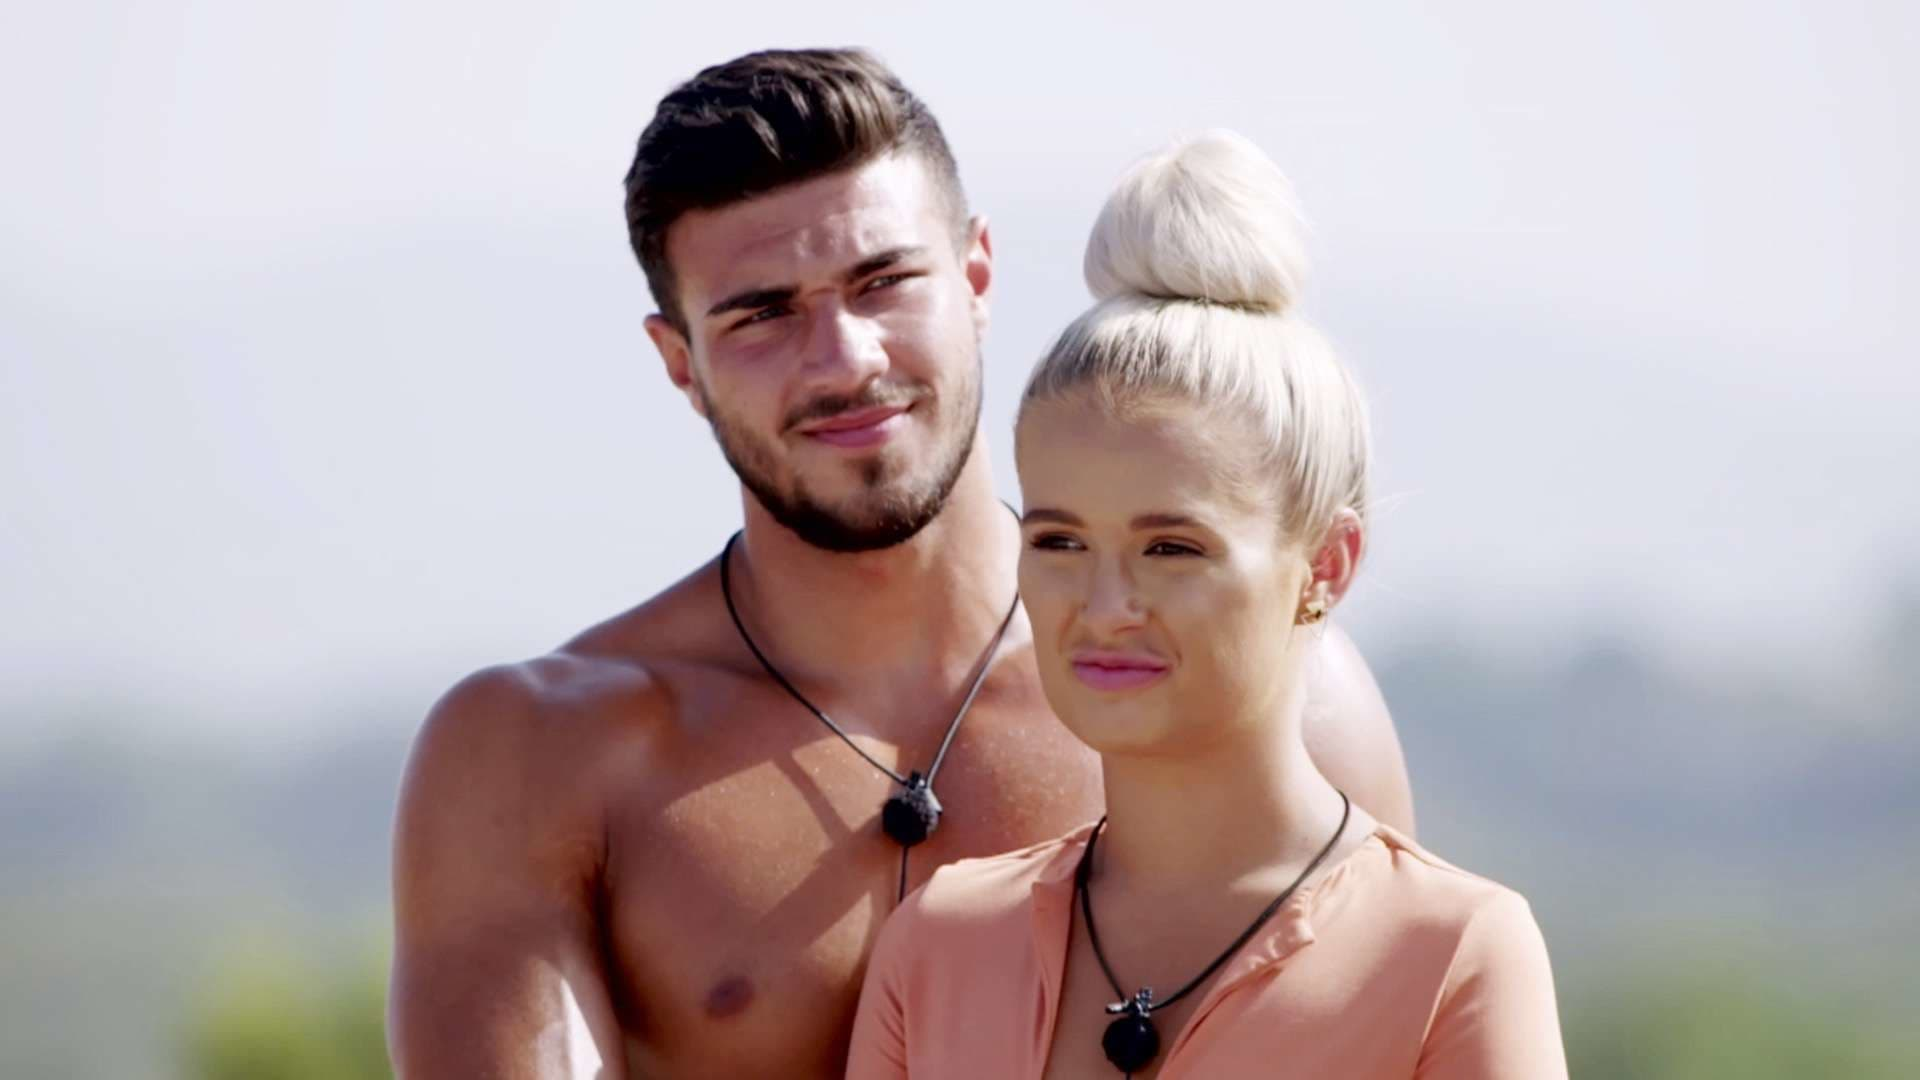 Love Island Season 5 Episode 26 watch online air date release date